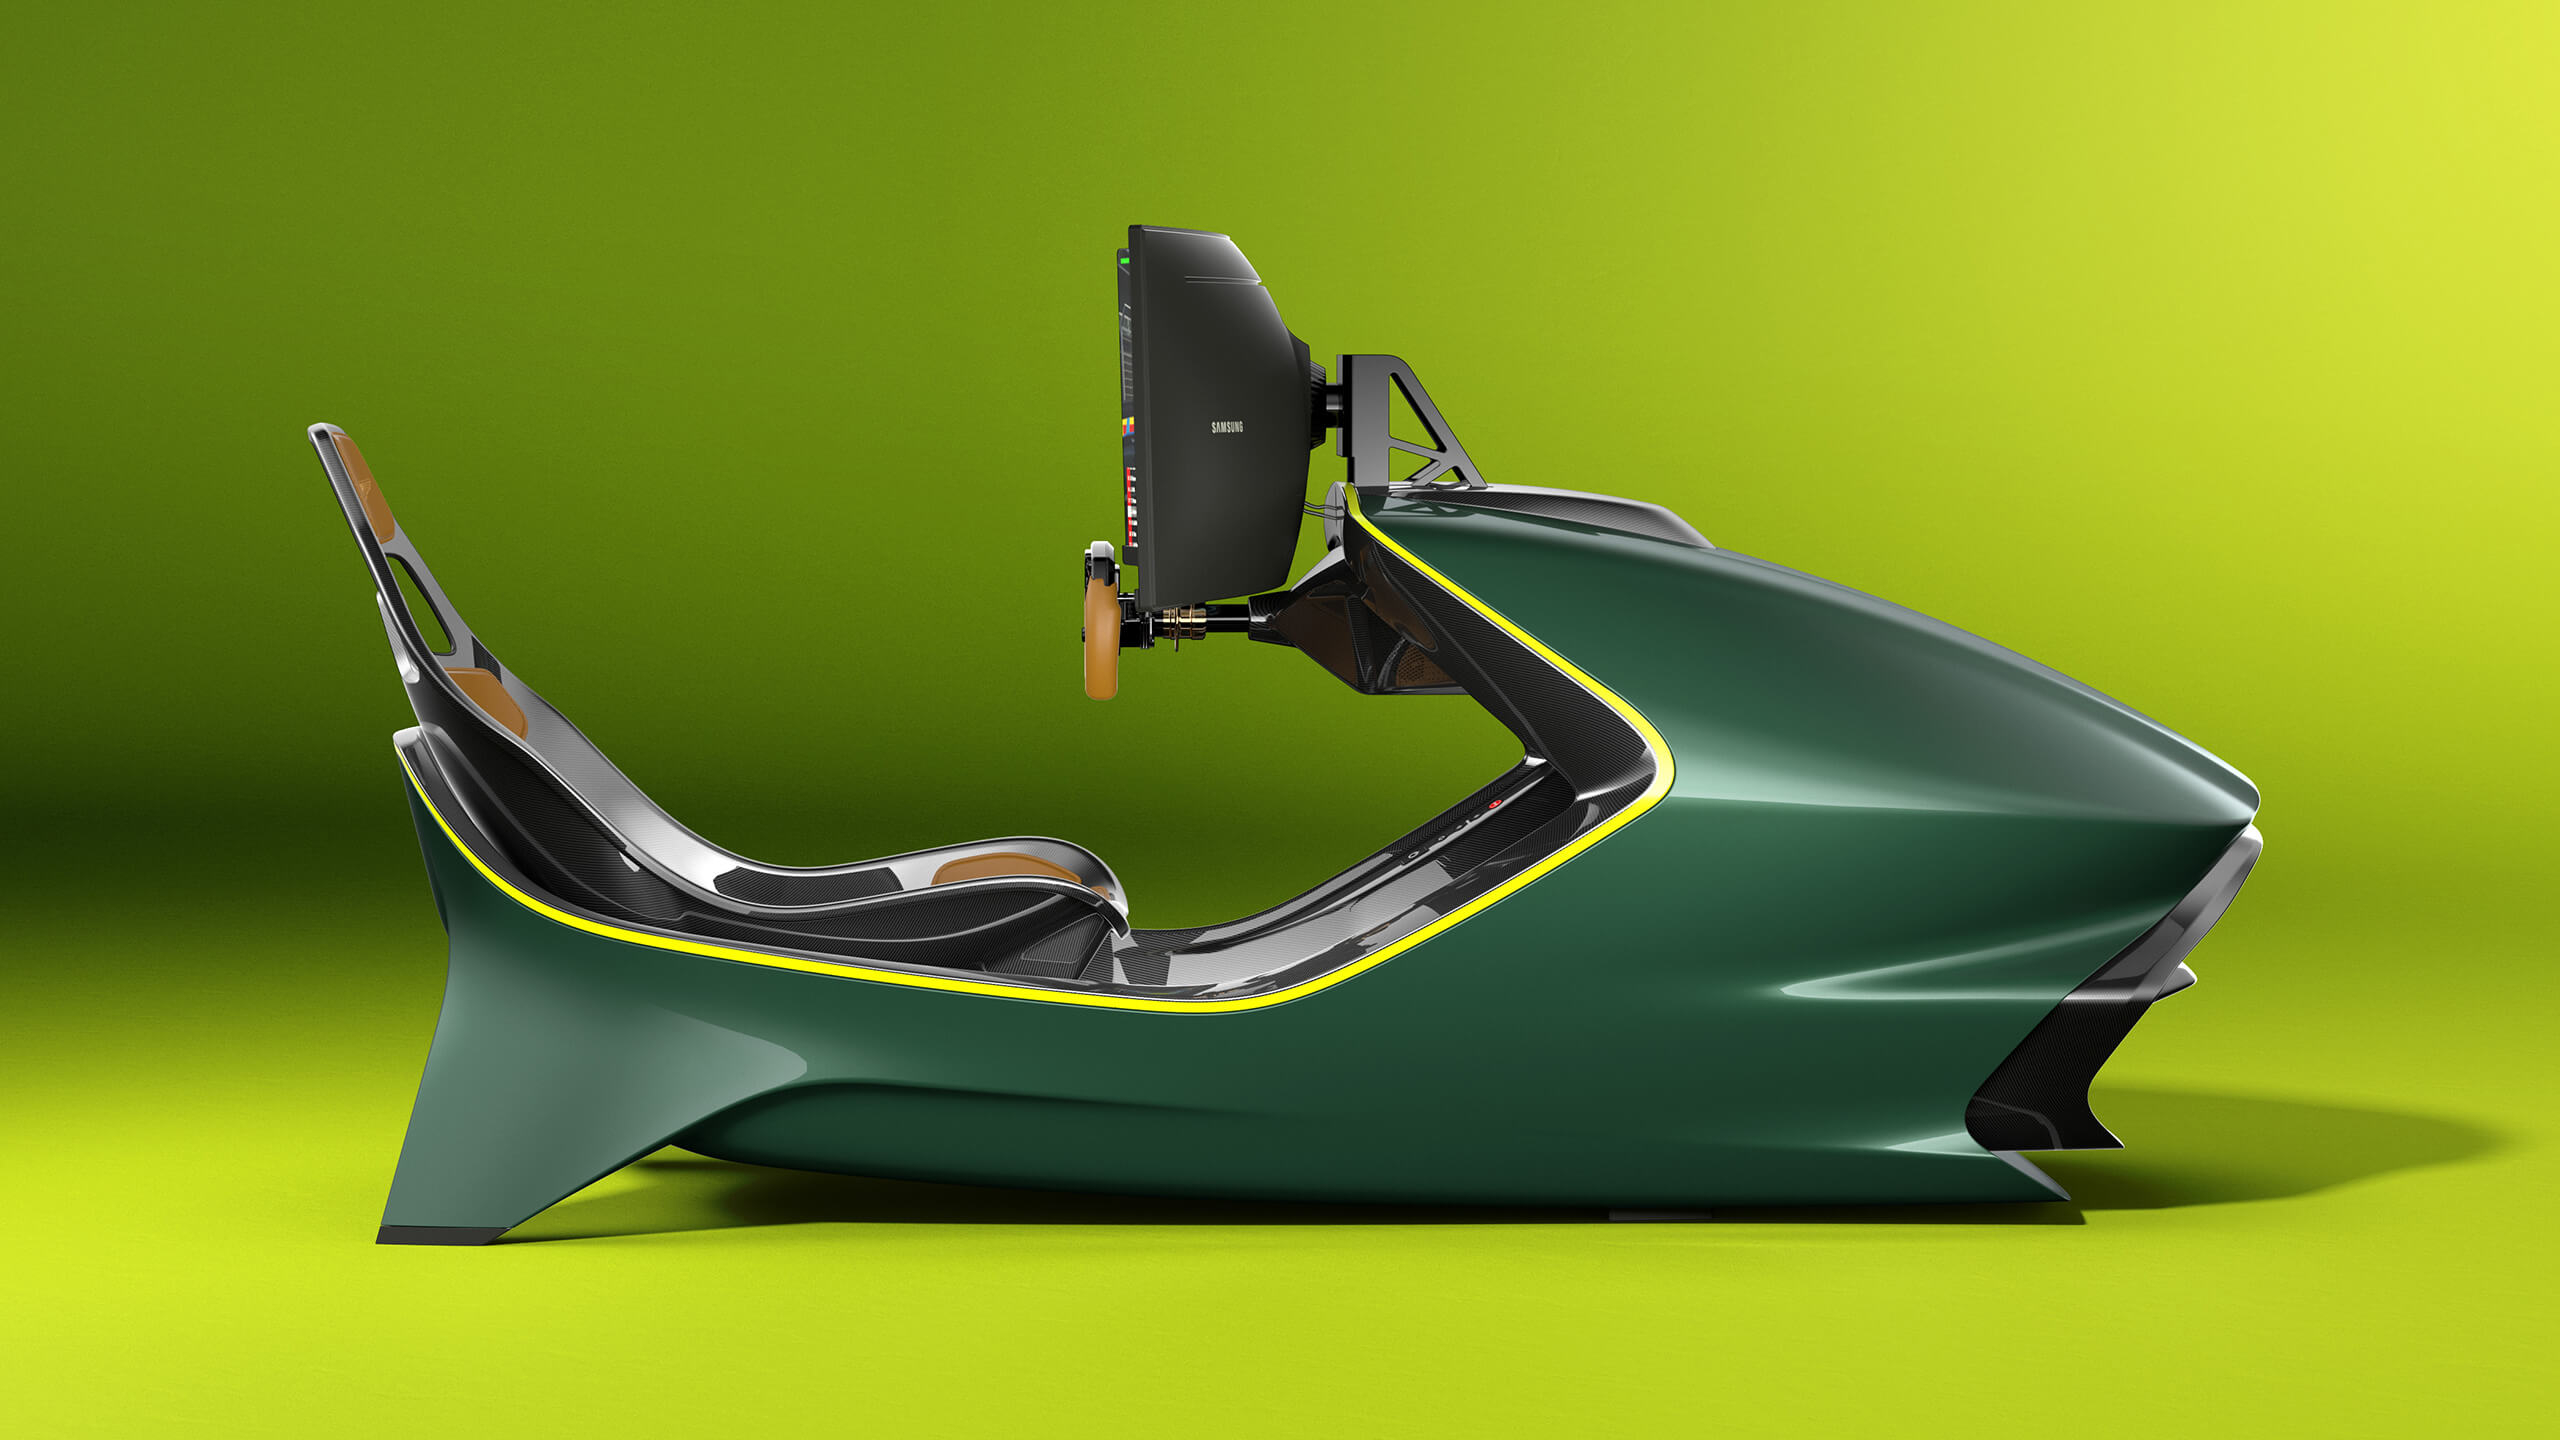 Working (at the wheel) from home: The Curv AMR-C01 simulator